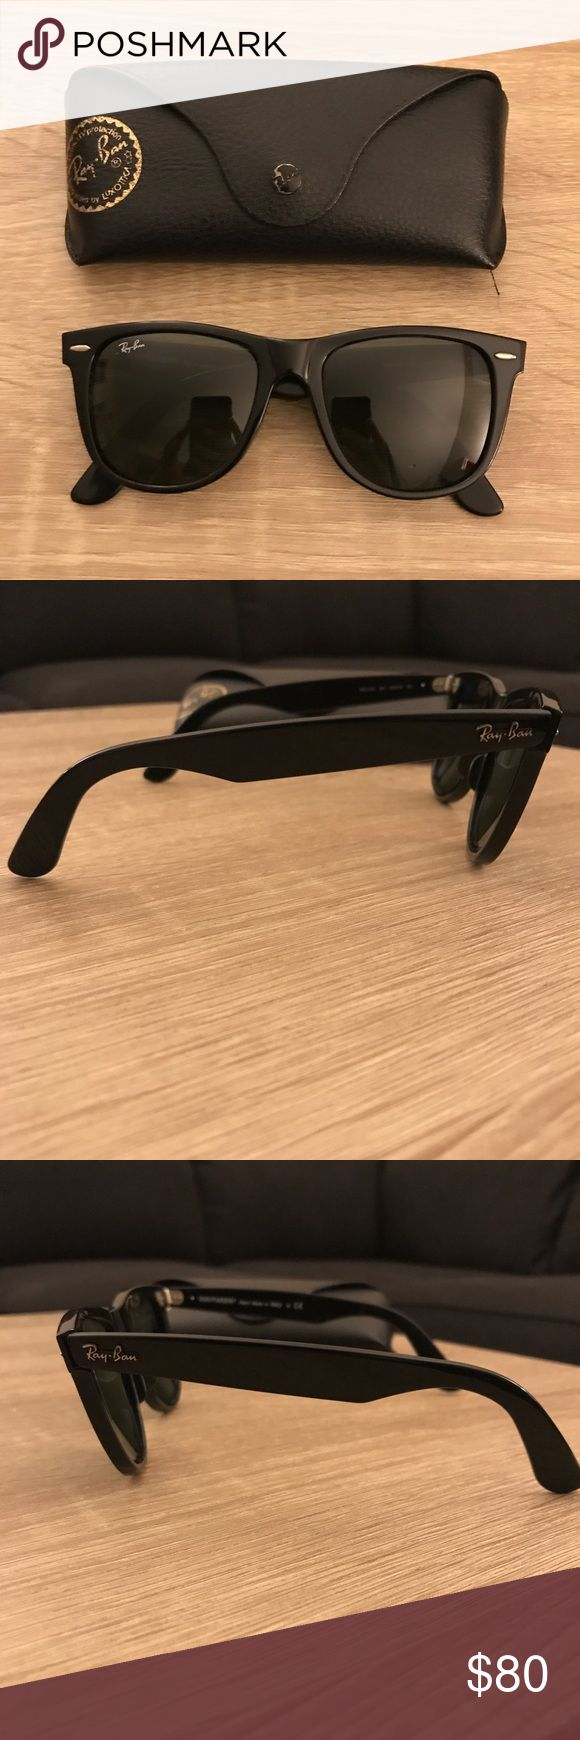 Ray-Ban Wayfarer sunglasses Wayfarer Ray-Ban sunglasses. Still has case, but no cloth. No scratches on the lenses. The only scratches are on the sides near the ears. Price as listed, but will take offers. Ray-Ban Accessories Sunglasses